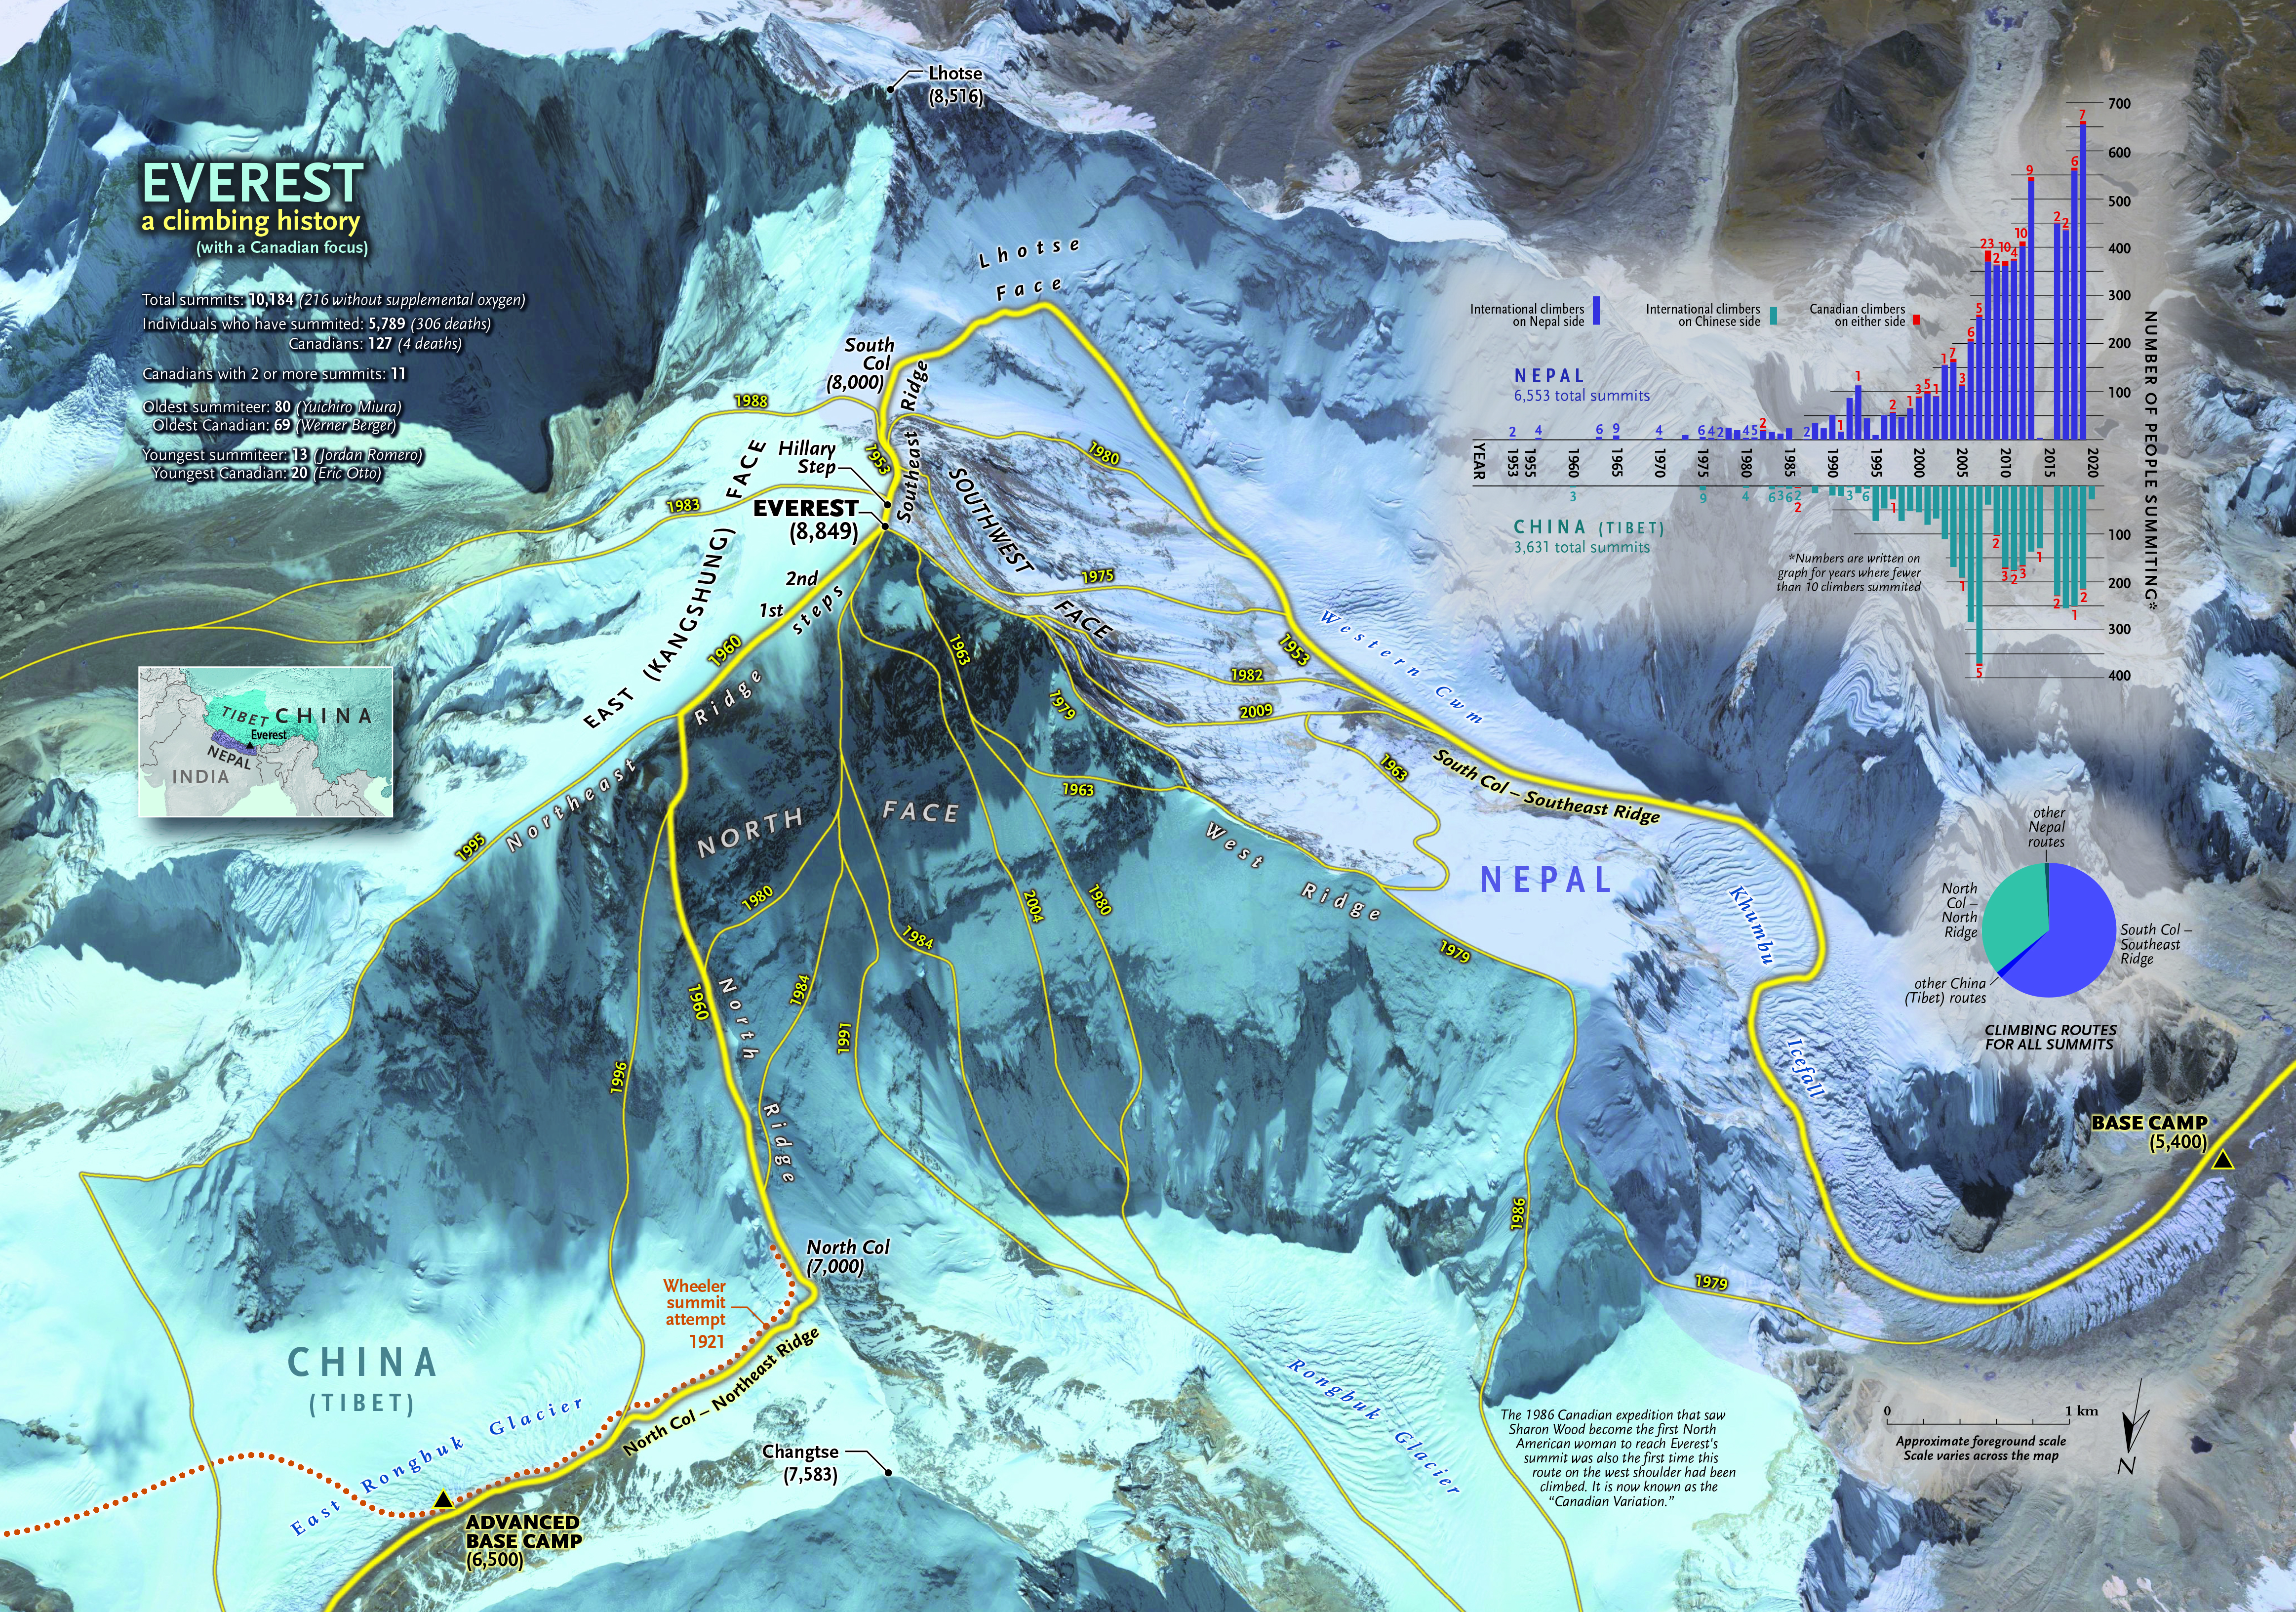 Map showing routes up Everest